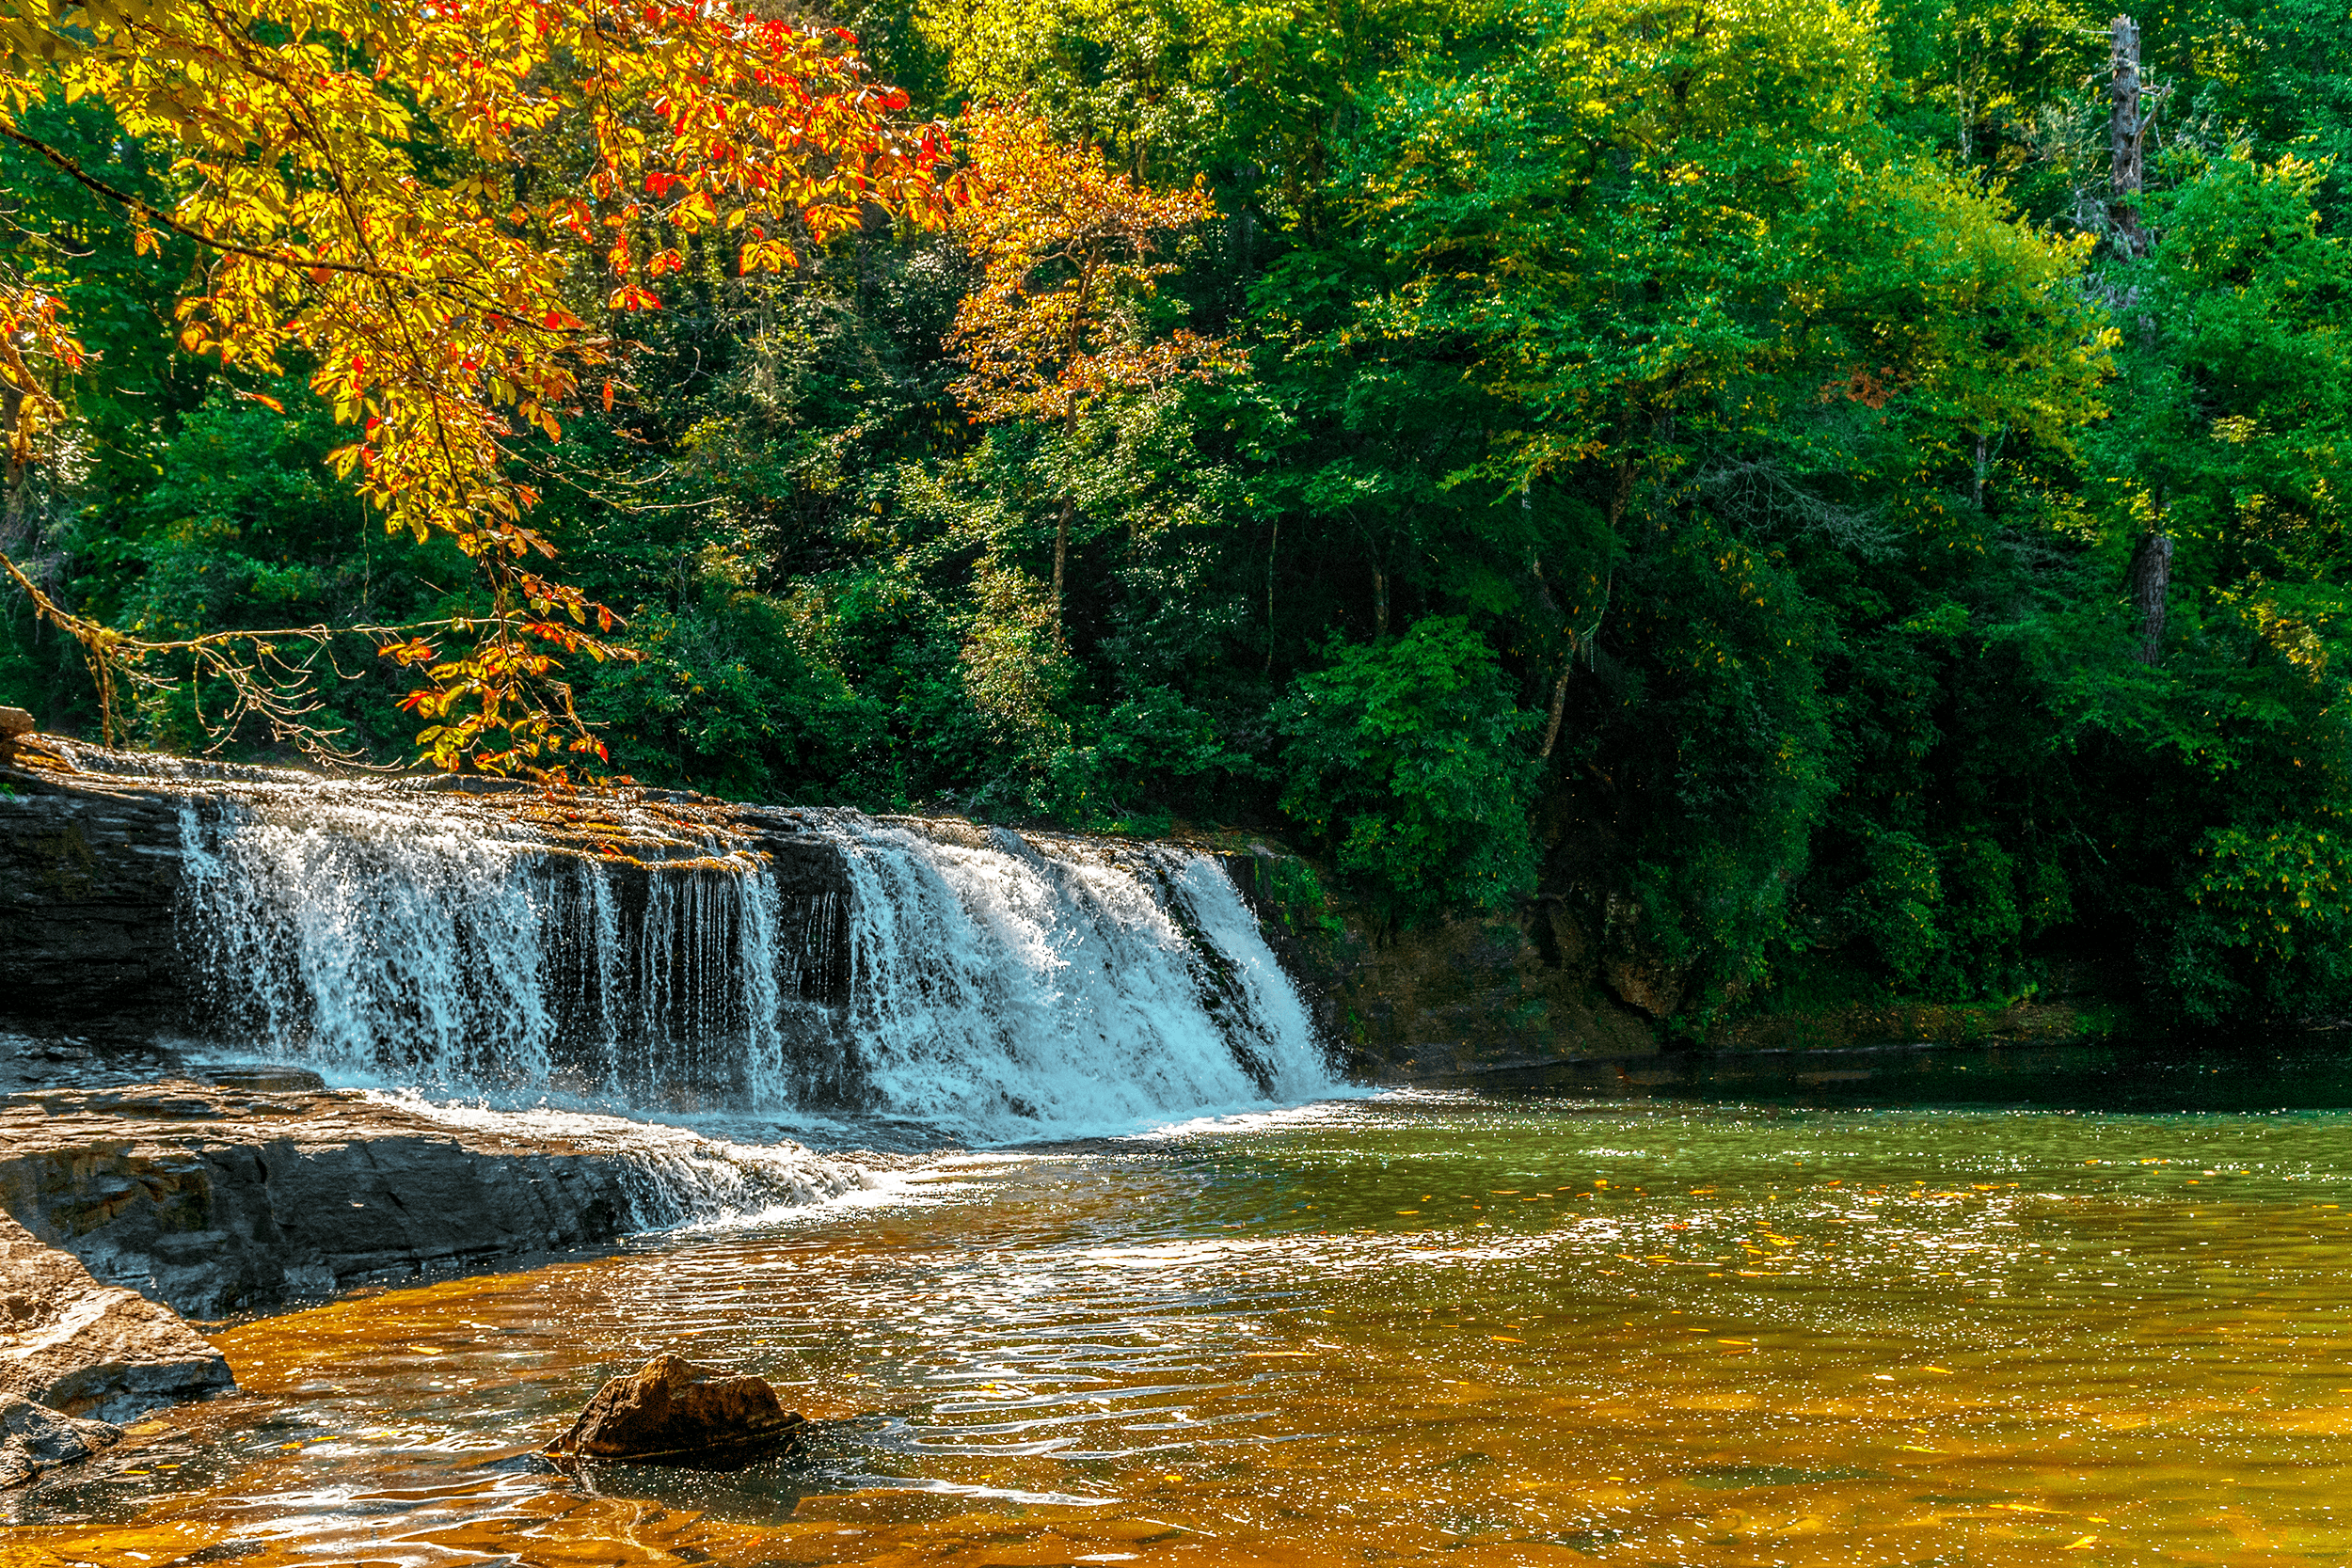 Perhaps you recognize  Hooker Falls  from the movie  The Last of the Mohicans  in the scene, where the canoes go over the falls.